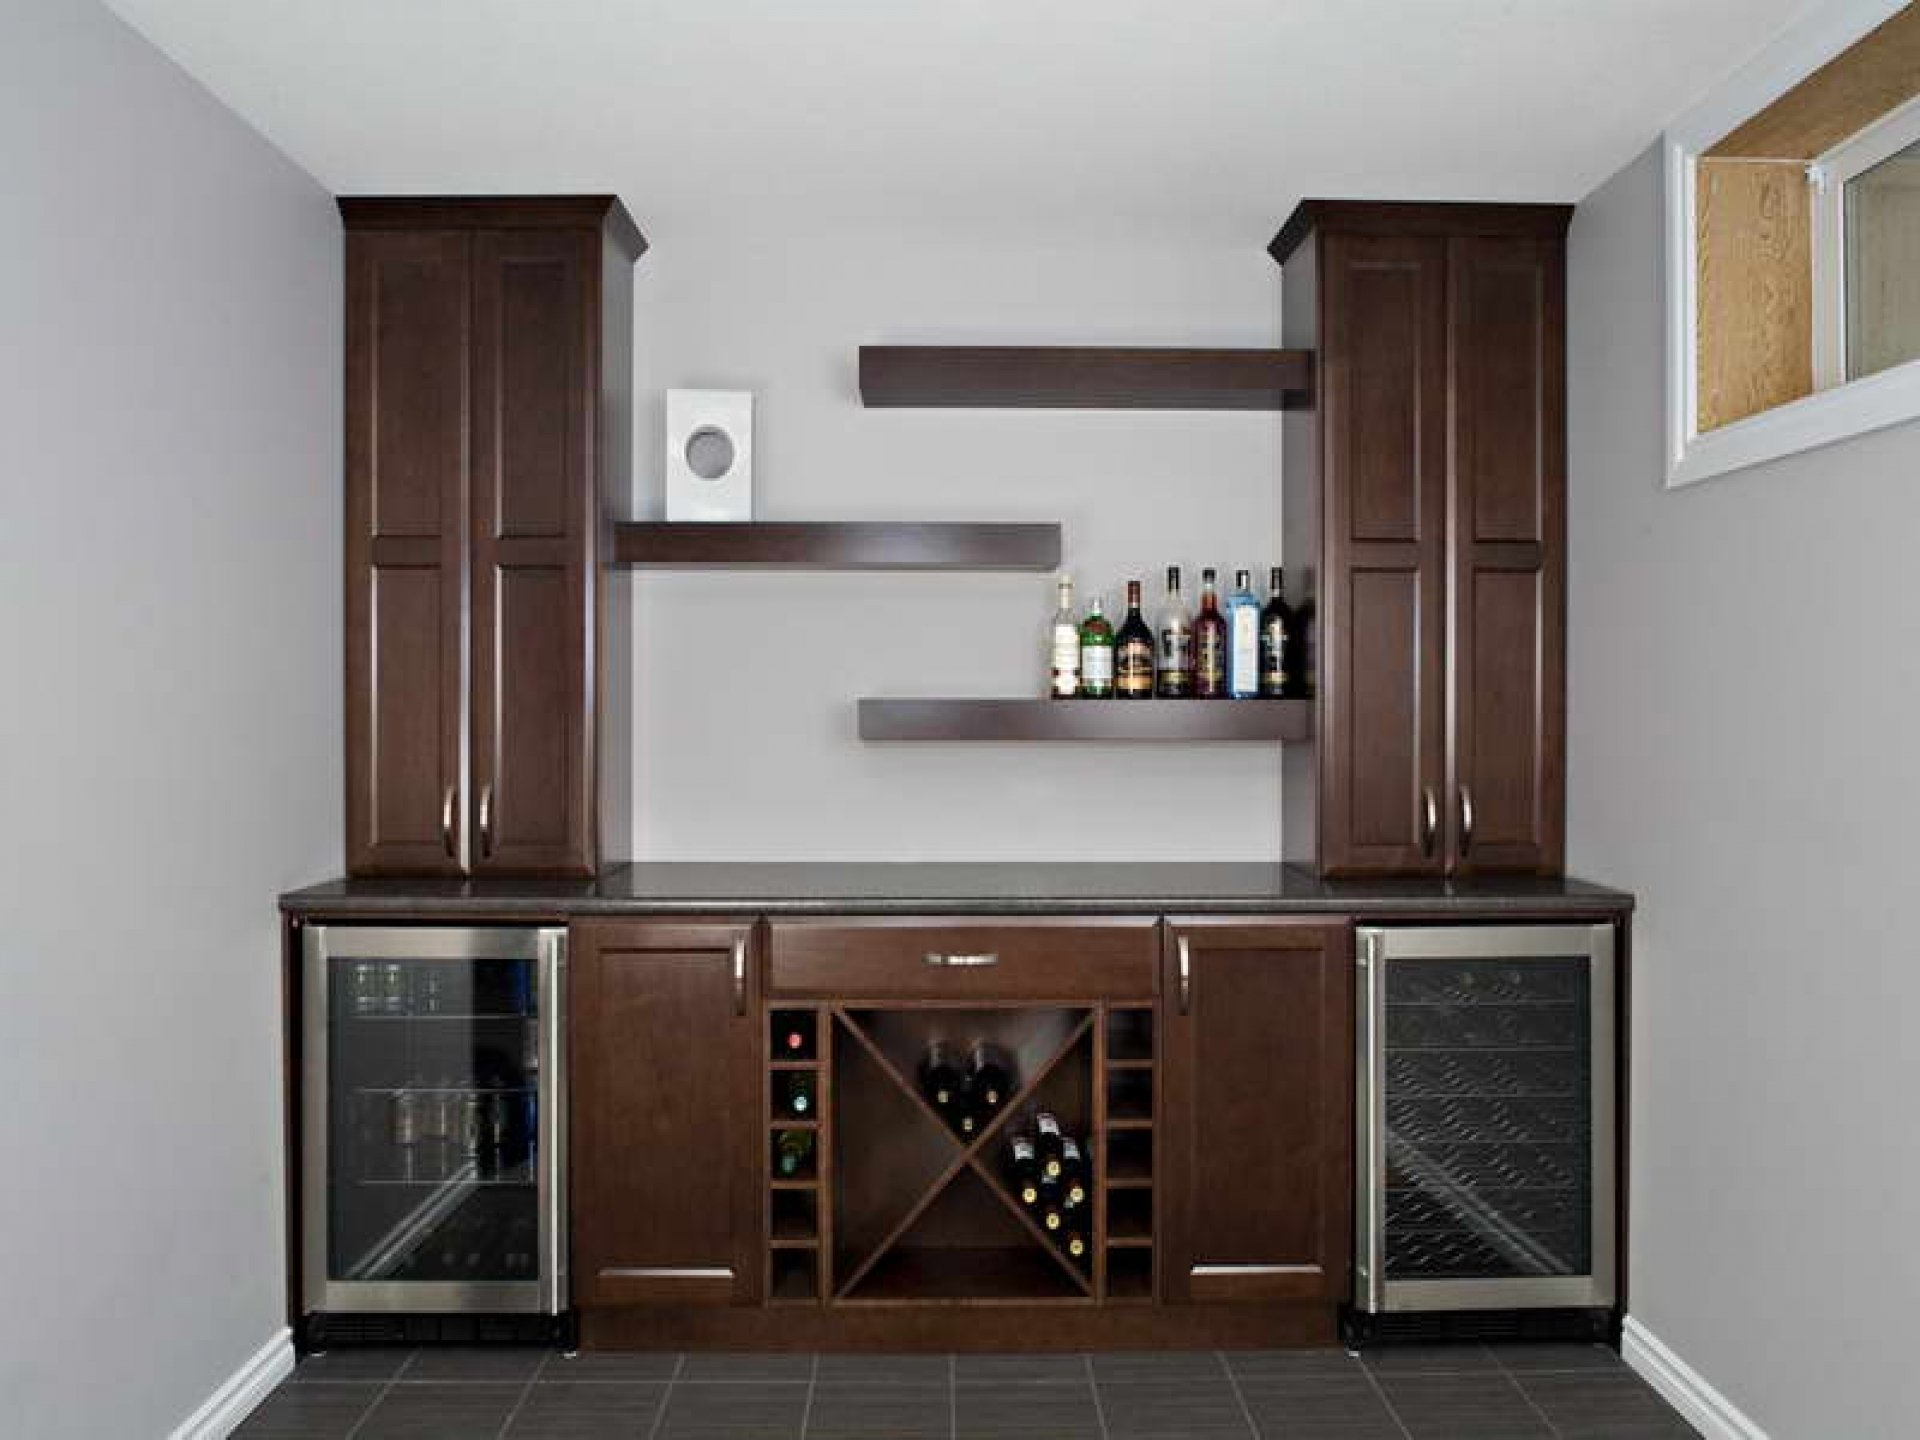 10 Lovable Bar Ideas For Small Spaces furniture home bar ideas small empty space of a home that has a 2020